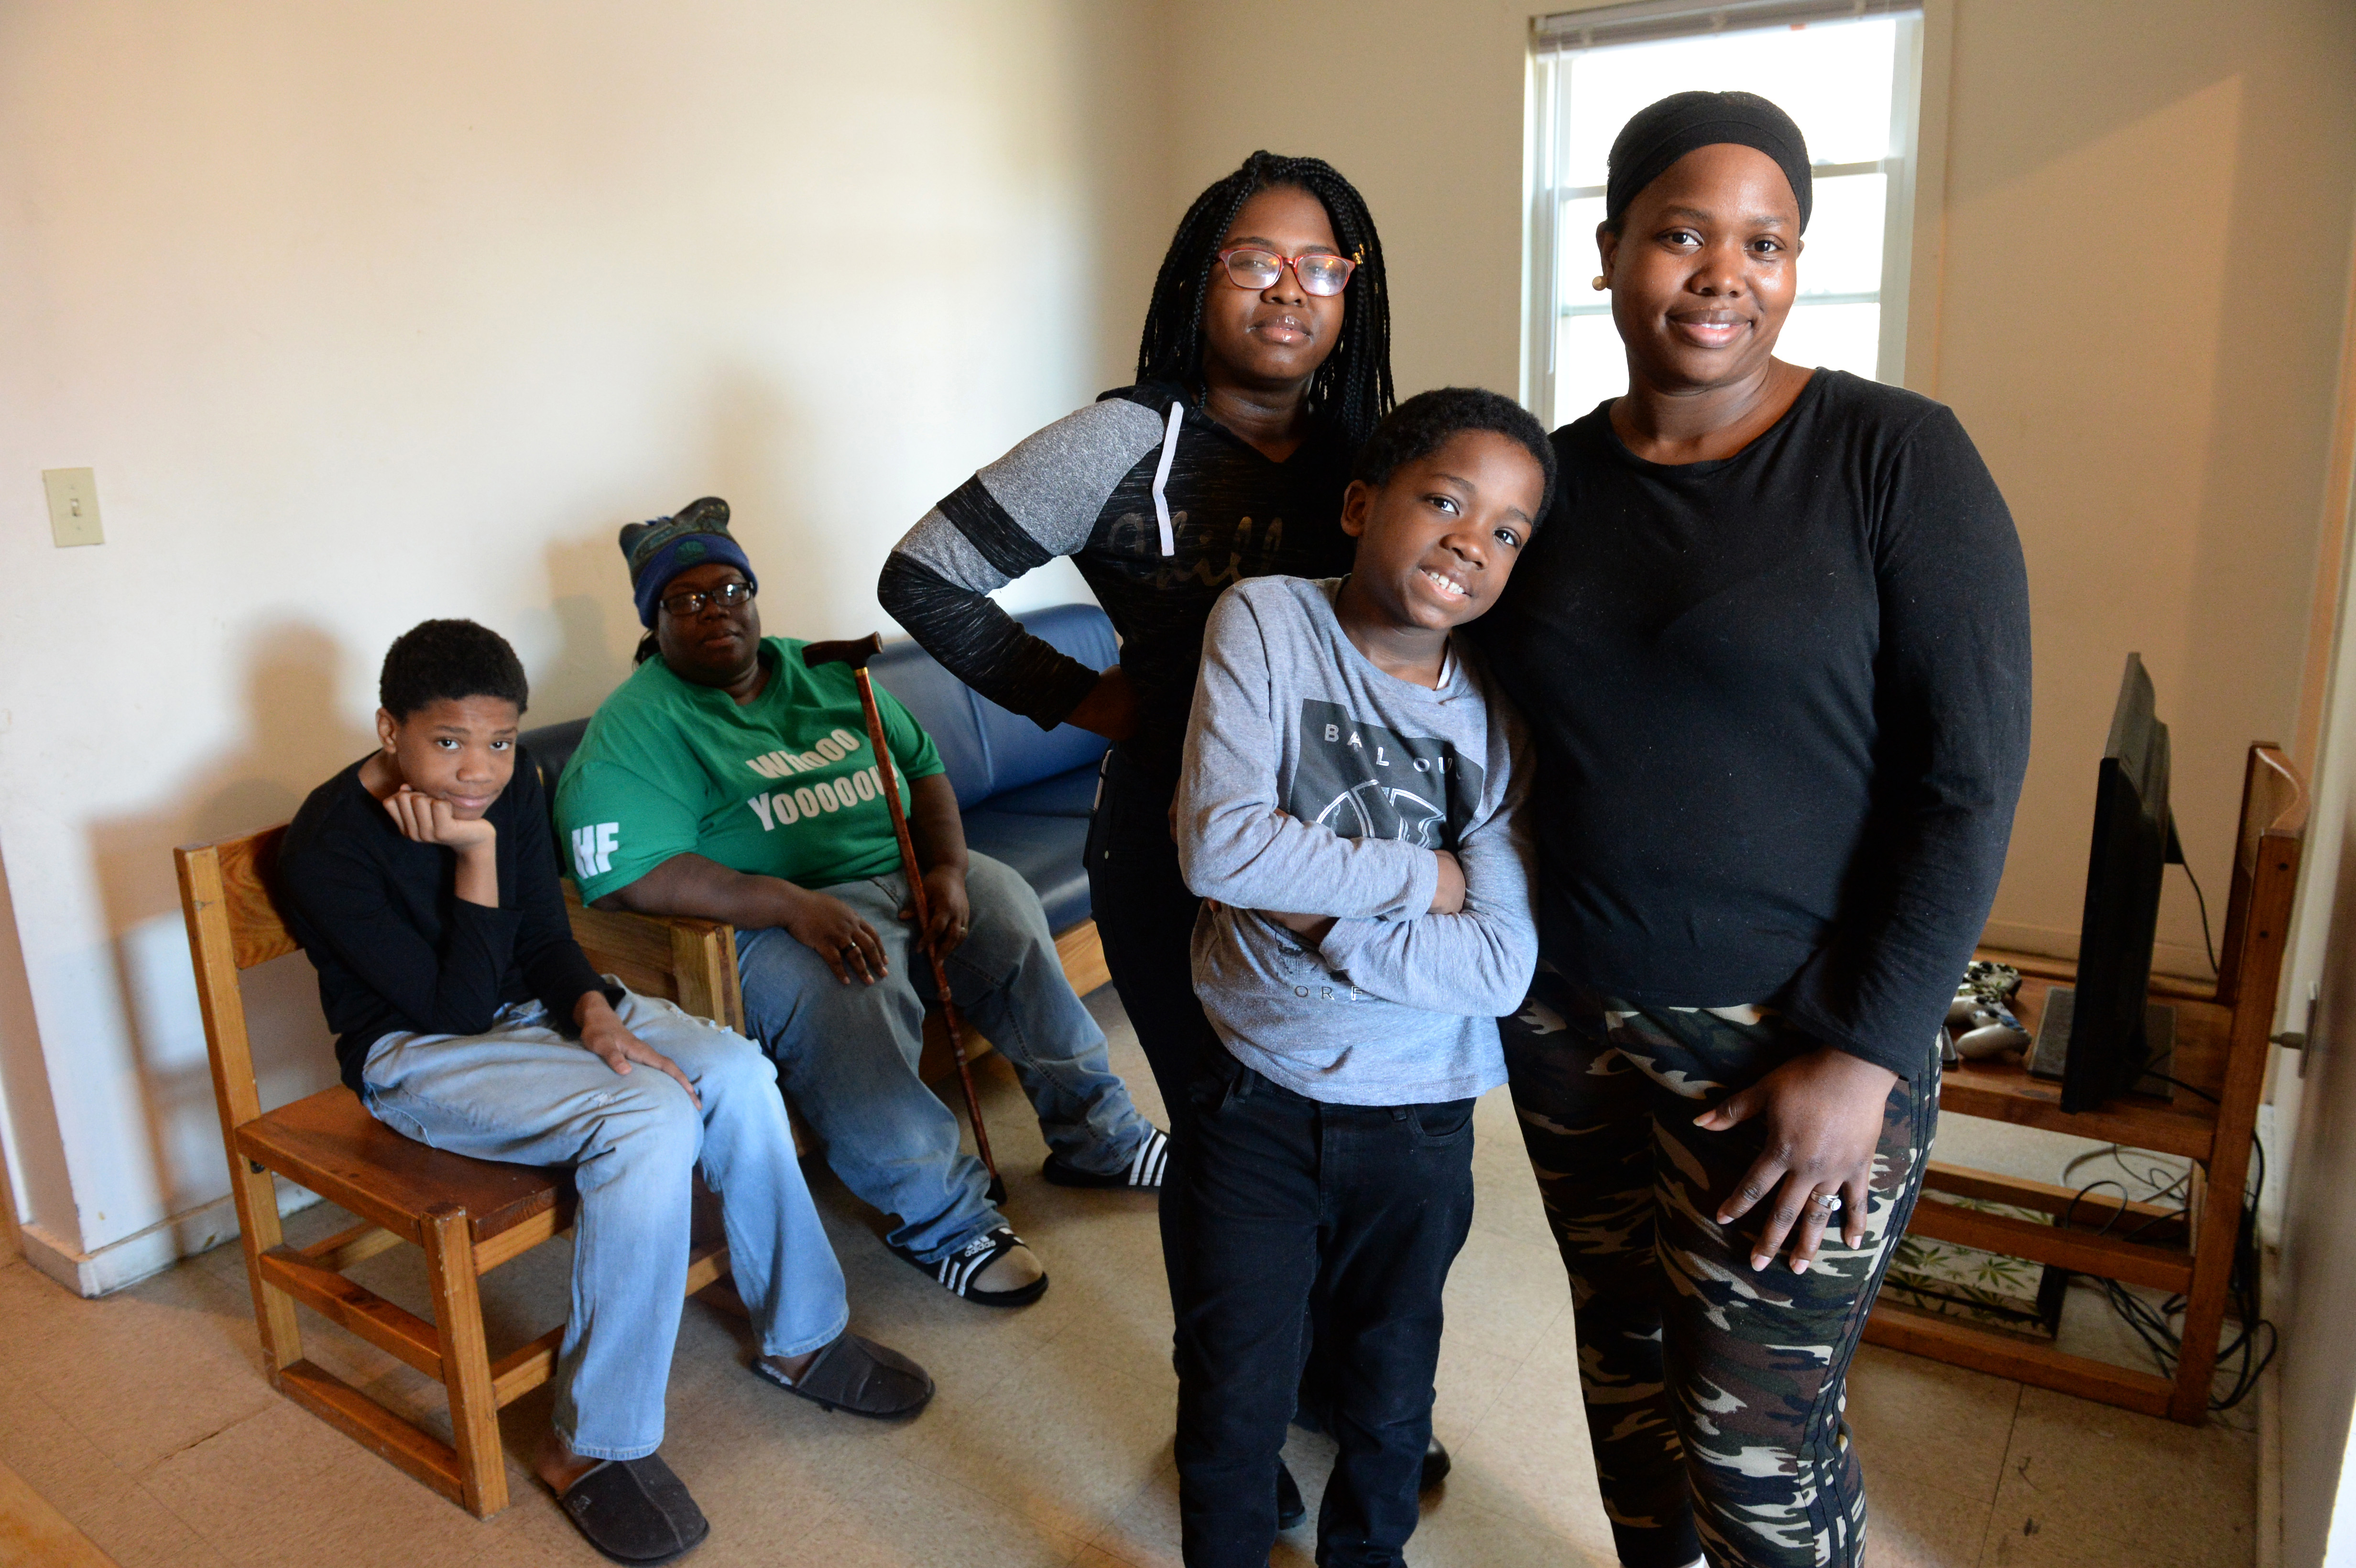 Ashana Cunningham lives with her wife, India Cunningham and her three children - Ansoneya Mitchener, 15, Robert Hallums, 12 and Brandon Mitchener, 9 - in a three-bedroom apartment in a Bridgeport shelter. Cunningham fell on hard times after being injured in a car accident that totaled her car. She had to quit her job after a two week hospital stay and now works part-time at a day care center for $12.50 per hour. Cunningham is looking for a better paying job and affordable housing for her family.